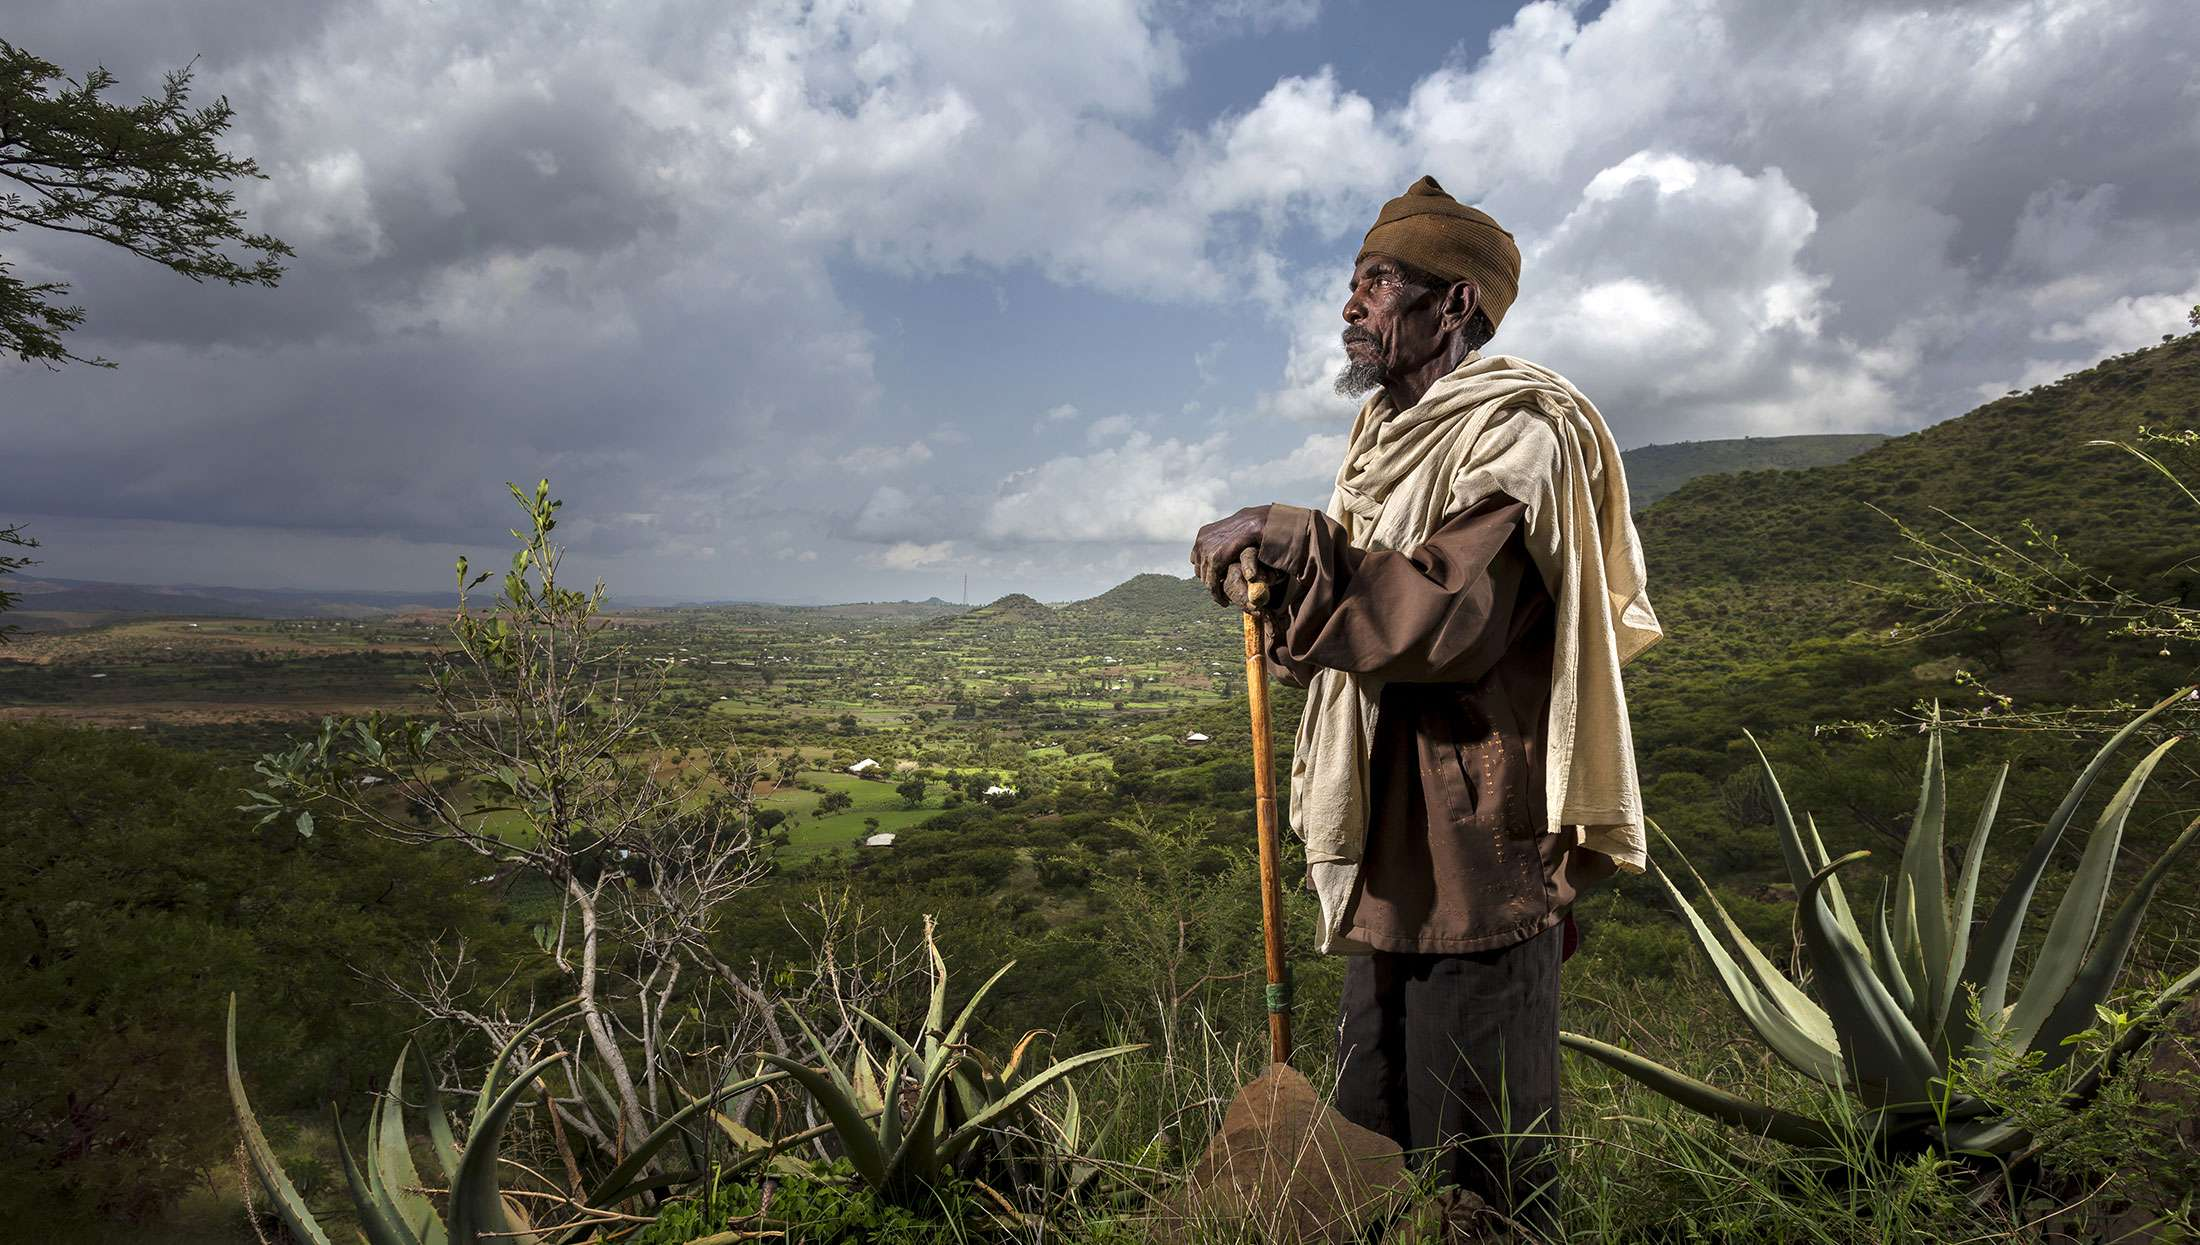 Brent Stirton, Committed to reforestation in Ethiopia